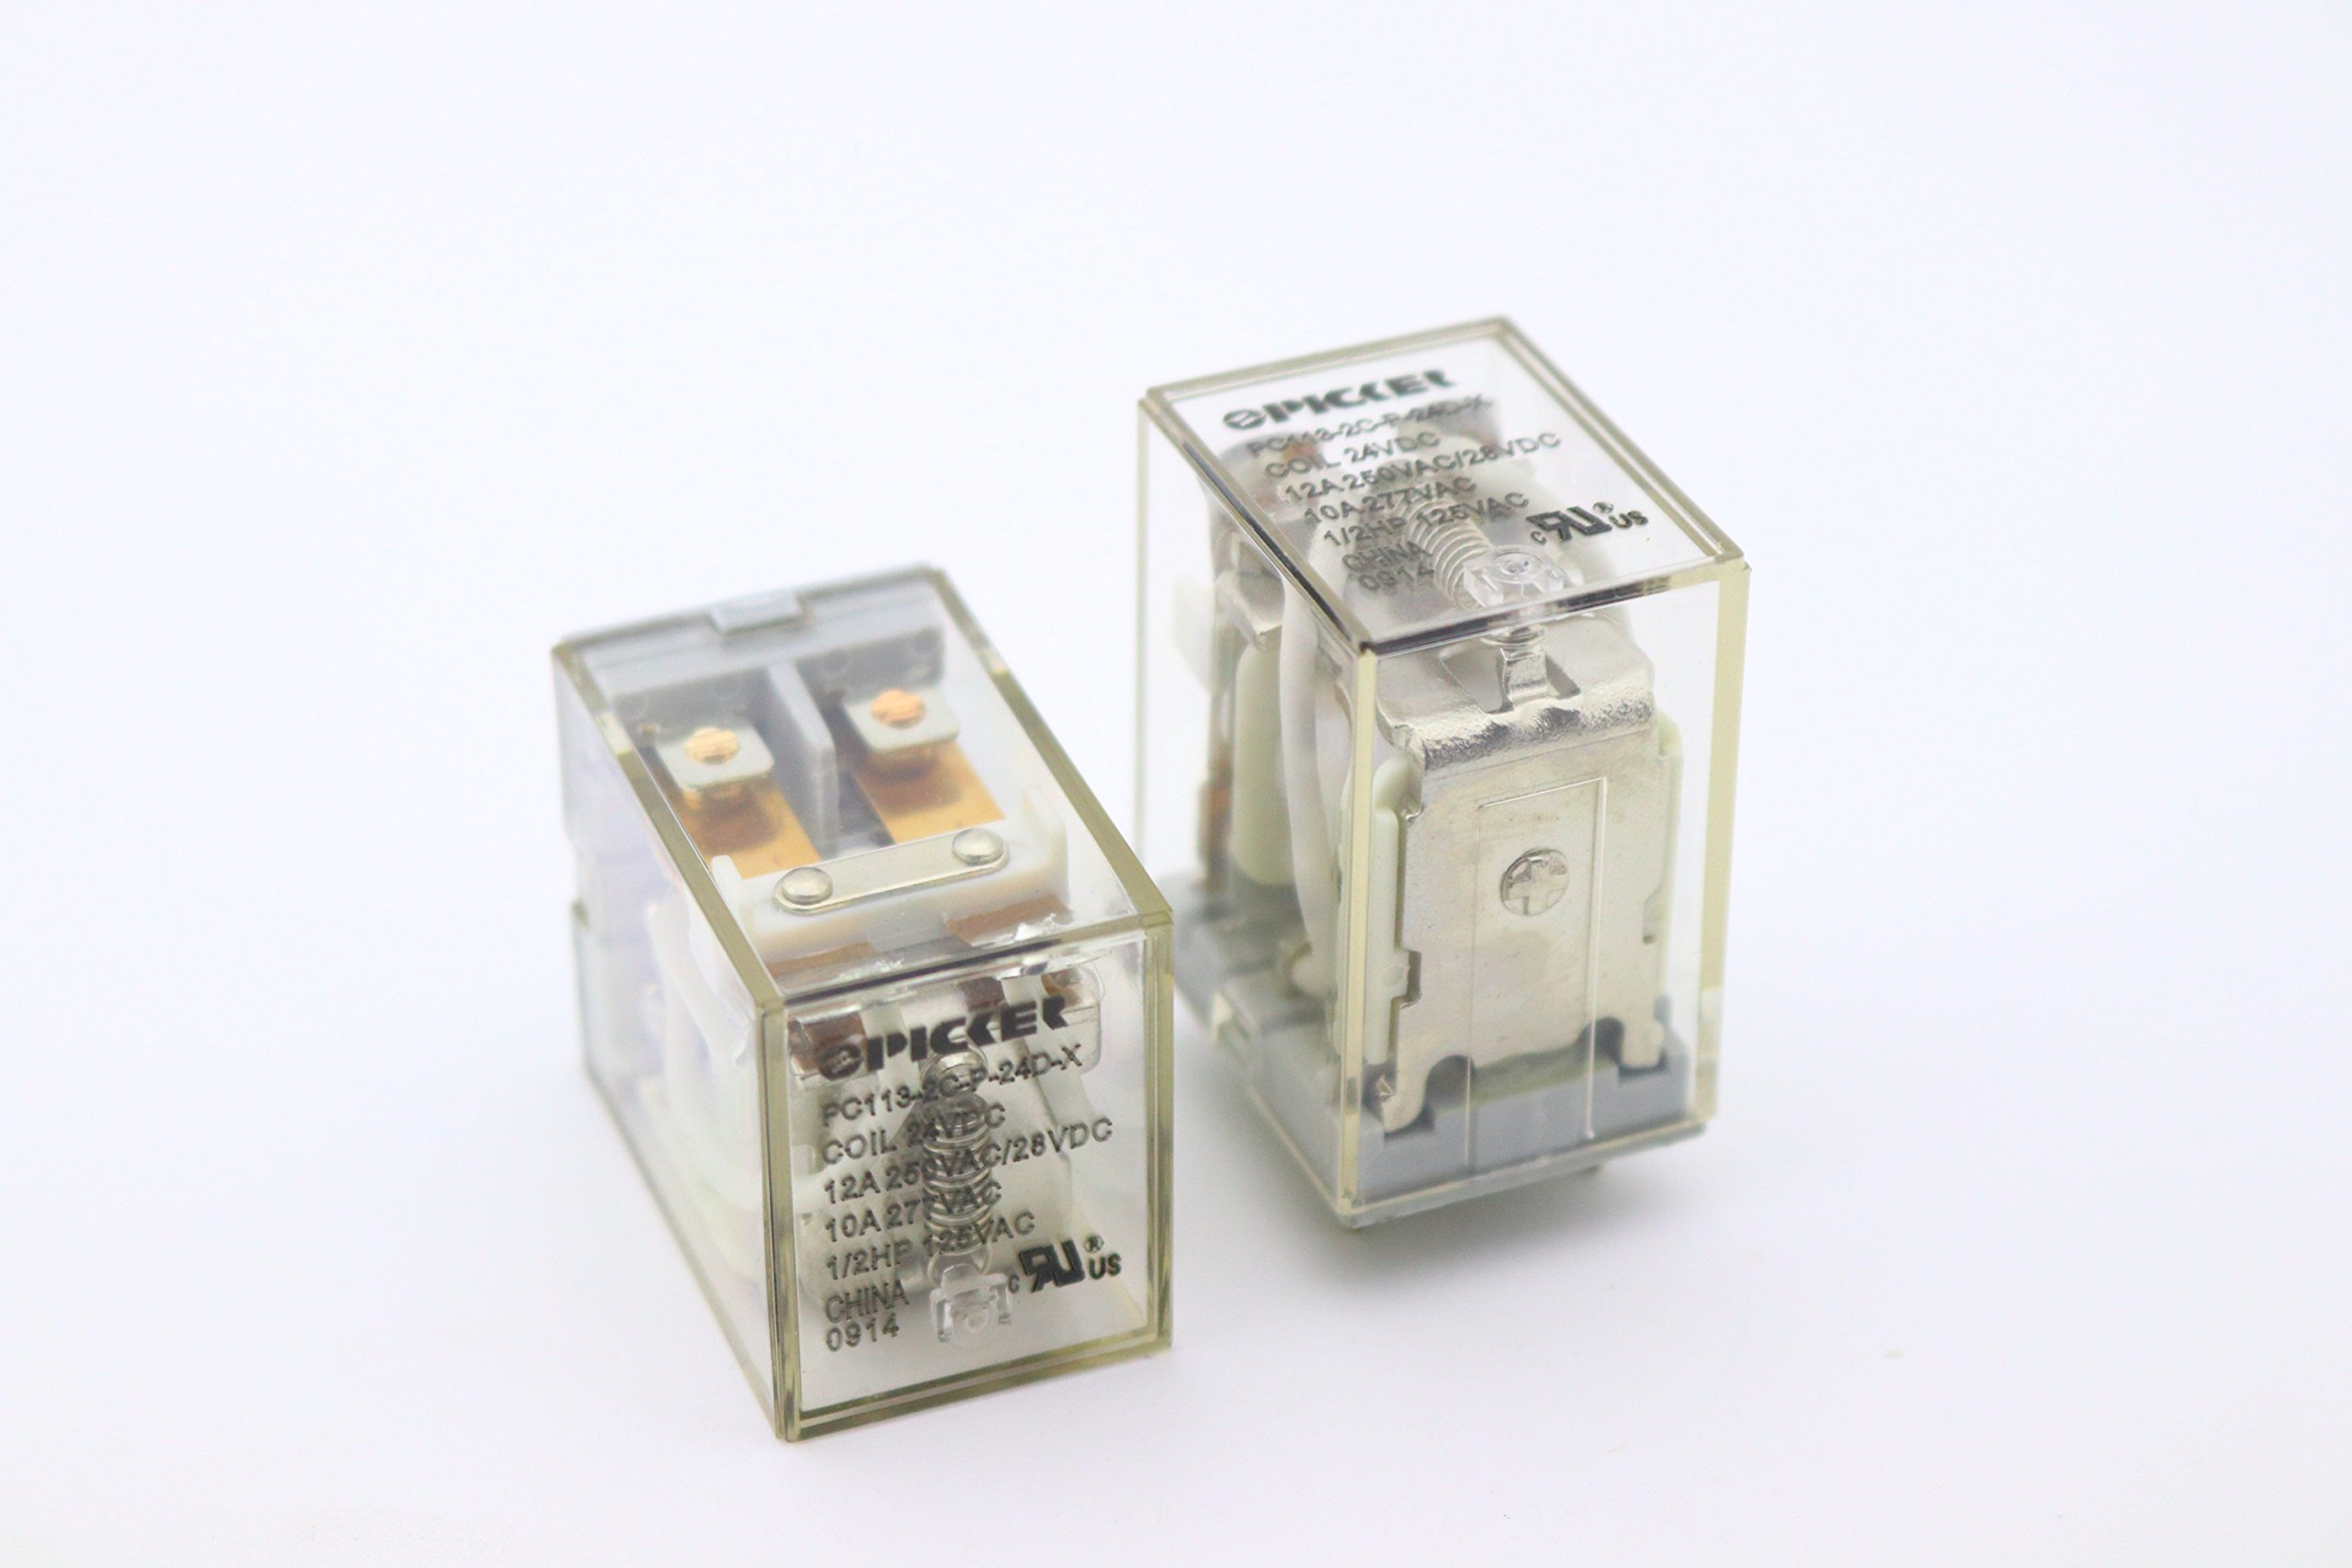 (x2) PC113-2C-P-24D-X-2 | DPDT 24 VDC Coil 12 Amp 250 VAC UL Rated, Miniature General Purpose Ice Cube Relay w/PC Pins & Clear Plastic Case | Cross: Song Chuan SCL-1-DPDT-24VDC; Omron LY2-0-DC24